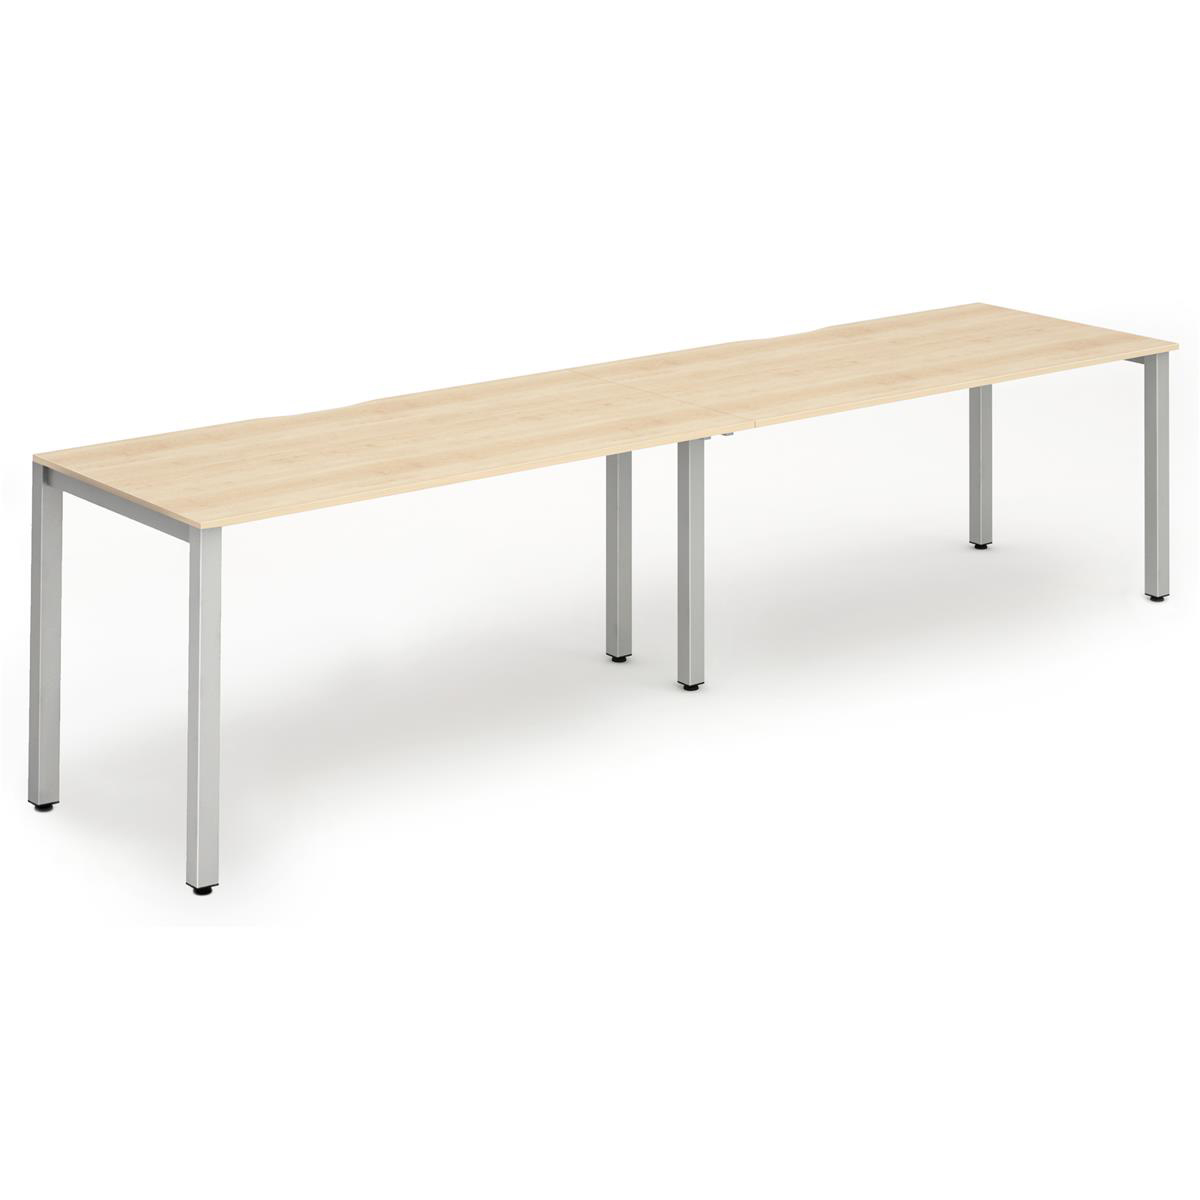 Trexus Bench Desk 2 Person Side to Side Configuration Silver Leg 2400x800mm Maple Ref BE376